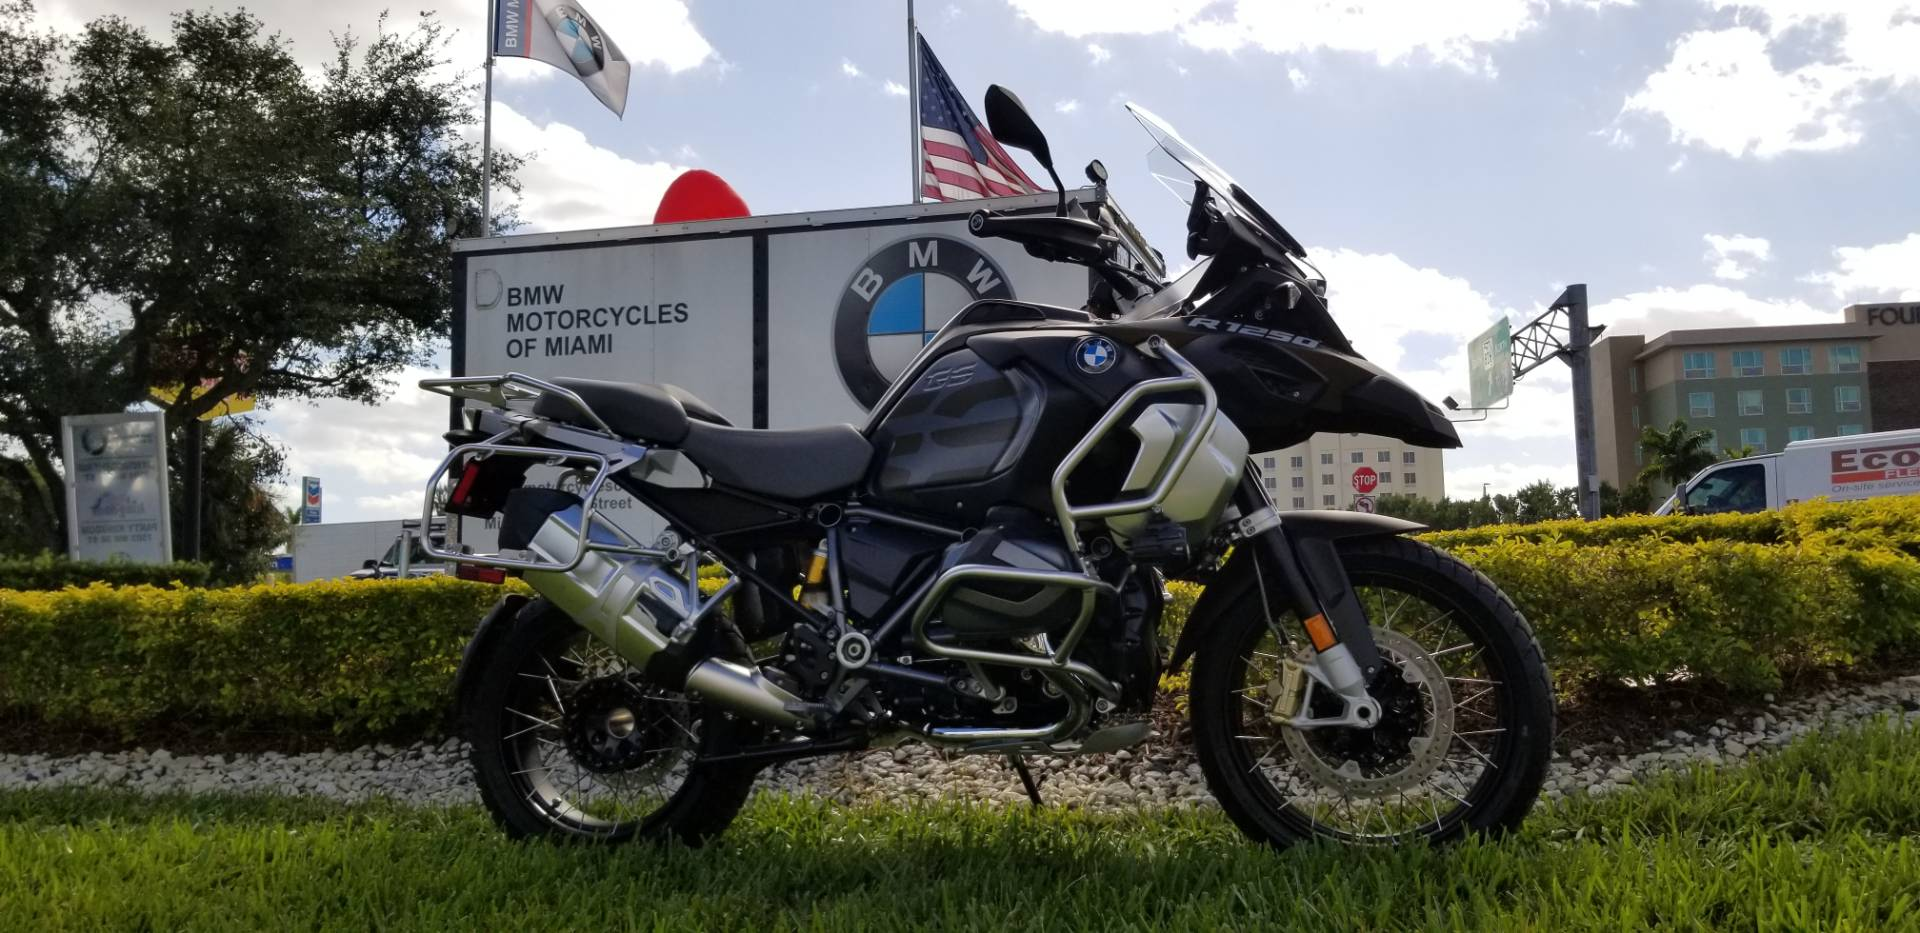 New 2019 BMW R 1250 GSA for sale, BMW for sale R 1250GSA, BMW Motorcycle R1250GSA, new BMW 1250GS Adventure, R1250GSAdventure, BMW Adventure, BMW Motorcycles of Miami, Motorcycles of Miami - Photo 29